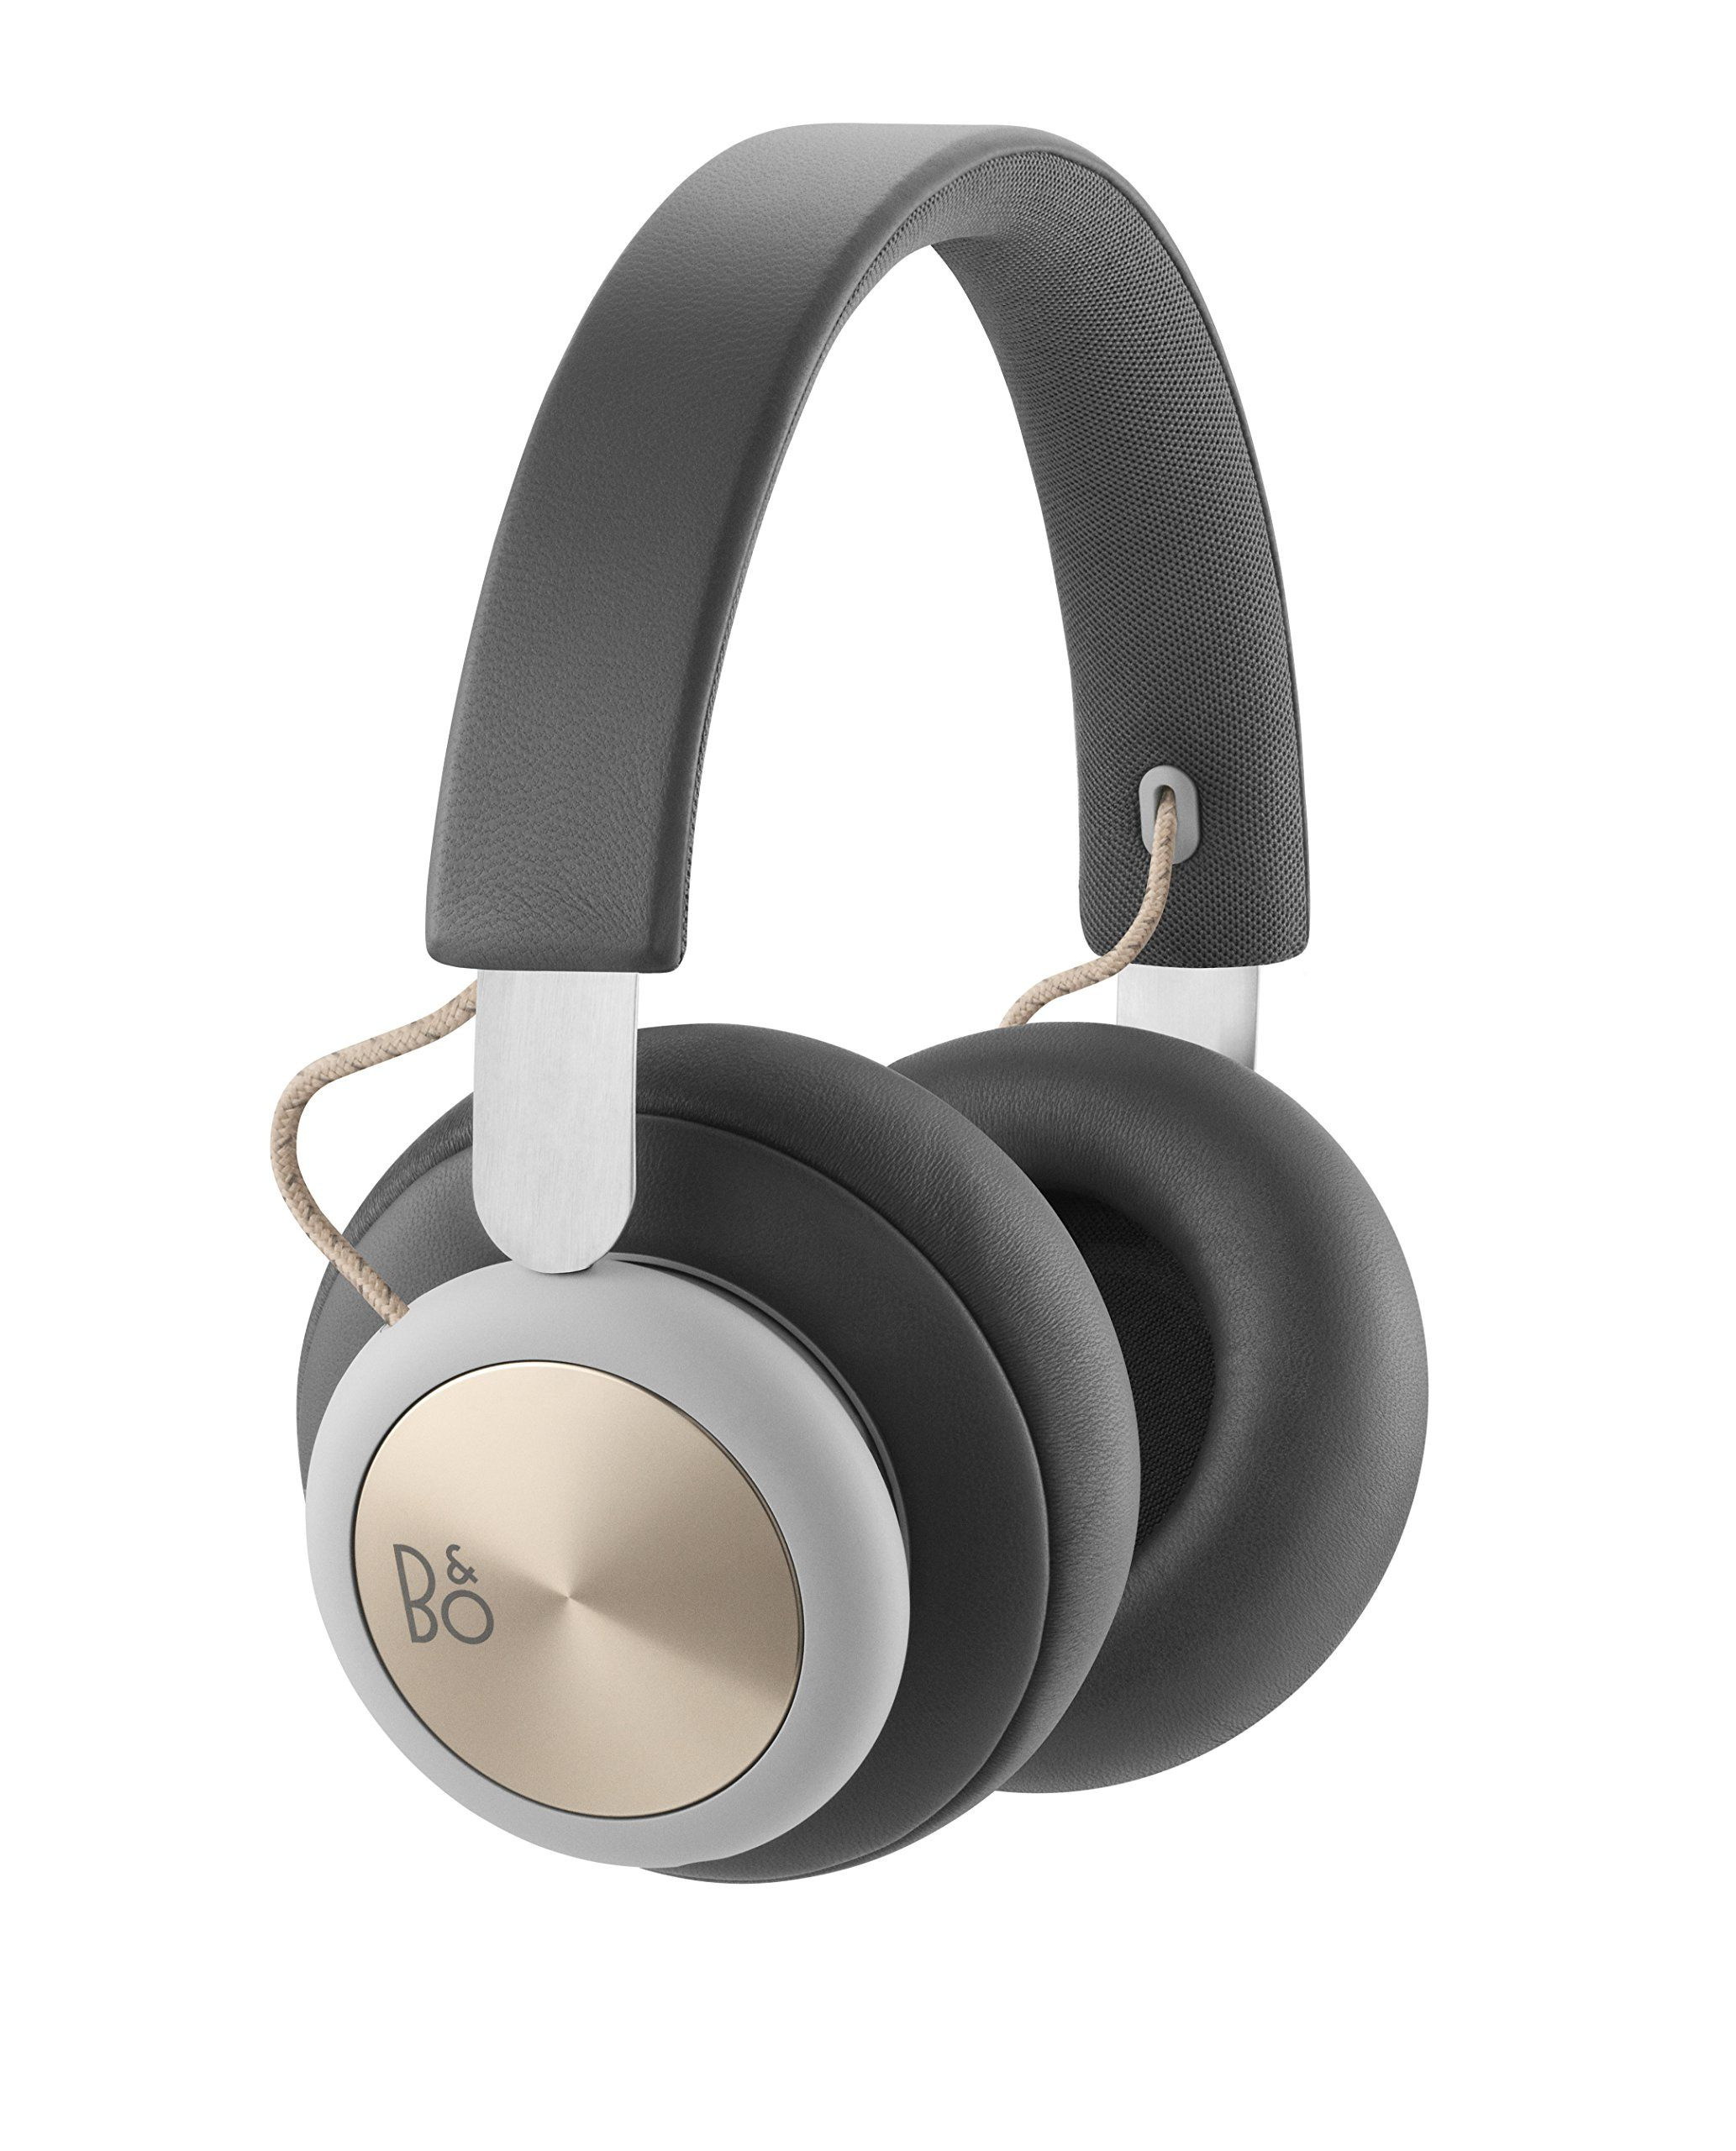 Prisma pro interior plat series amp tech series - B O Play By Bang Olufsen Beoplay H4 Wireless Headphones Charcoal Gray Consumer Electronics Pinterest Headphones